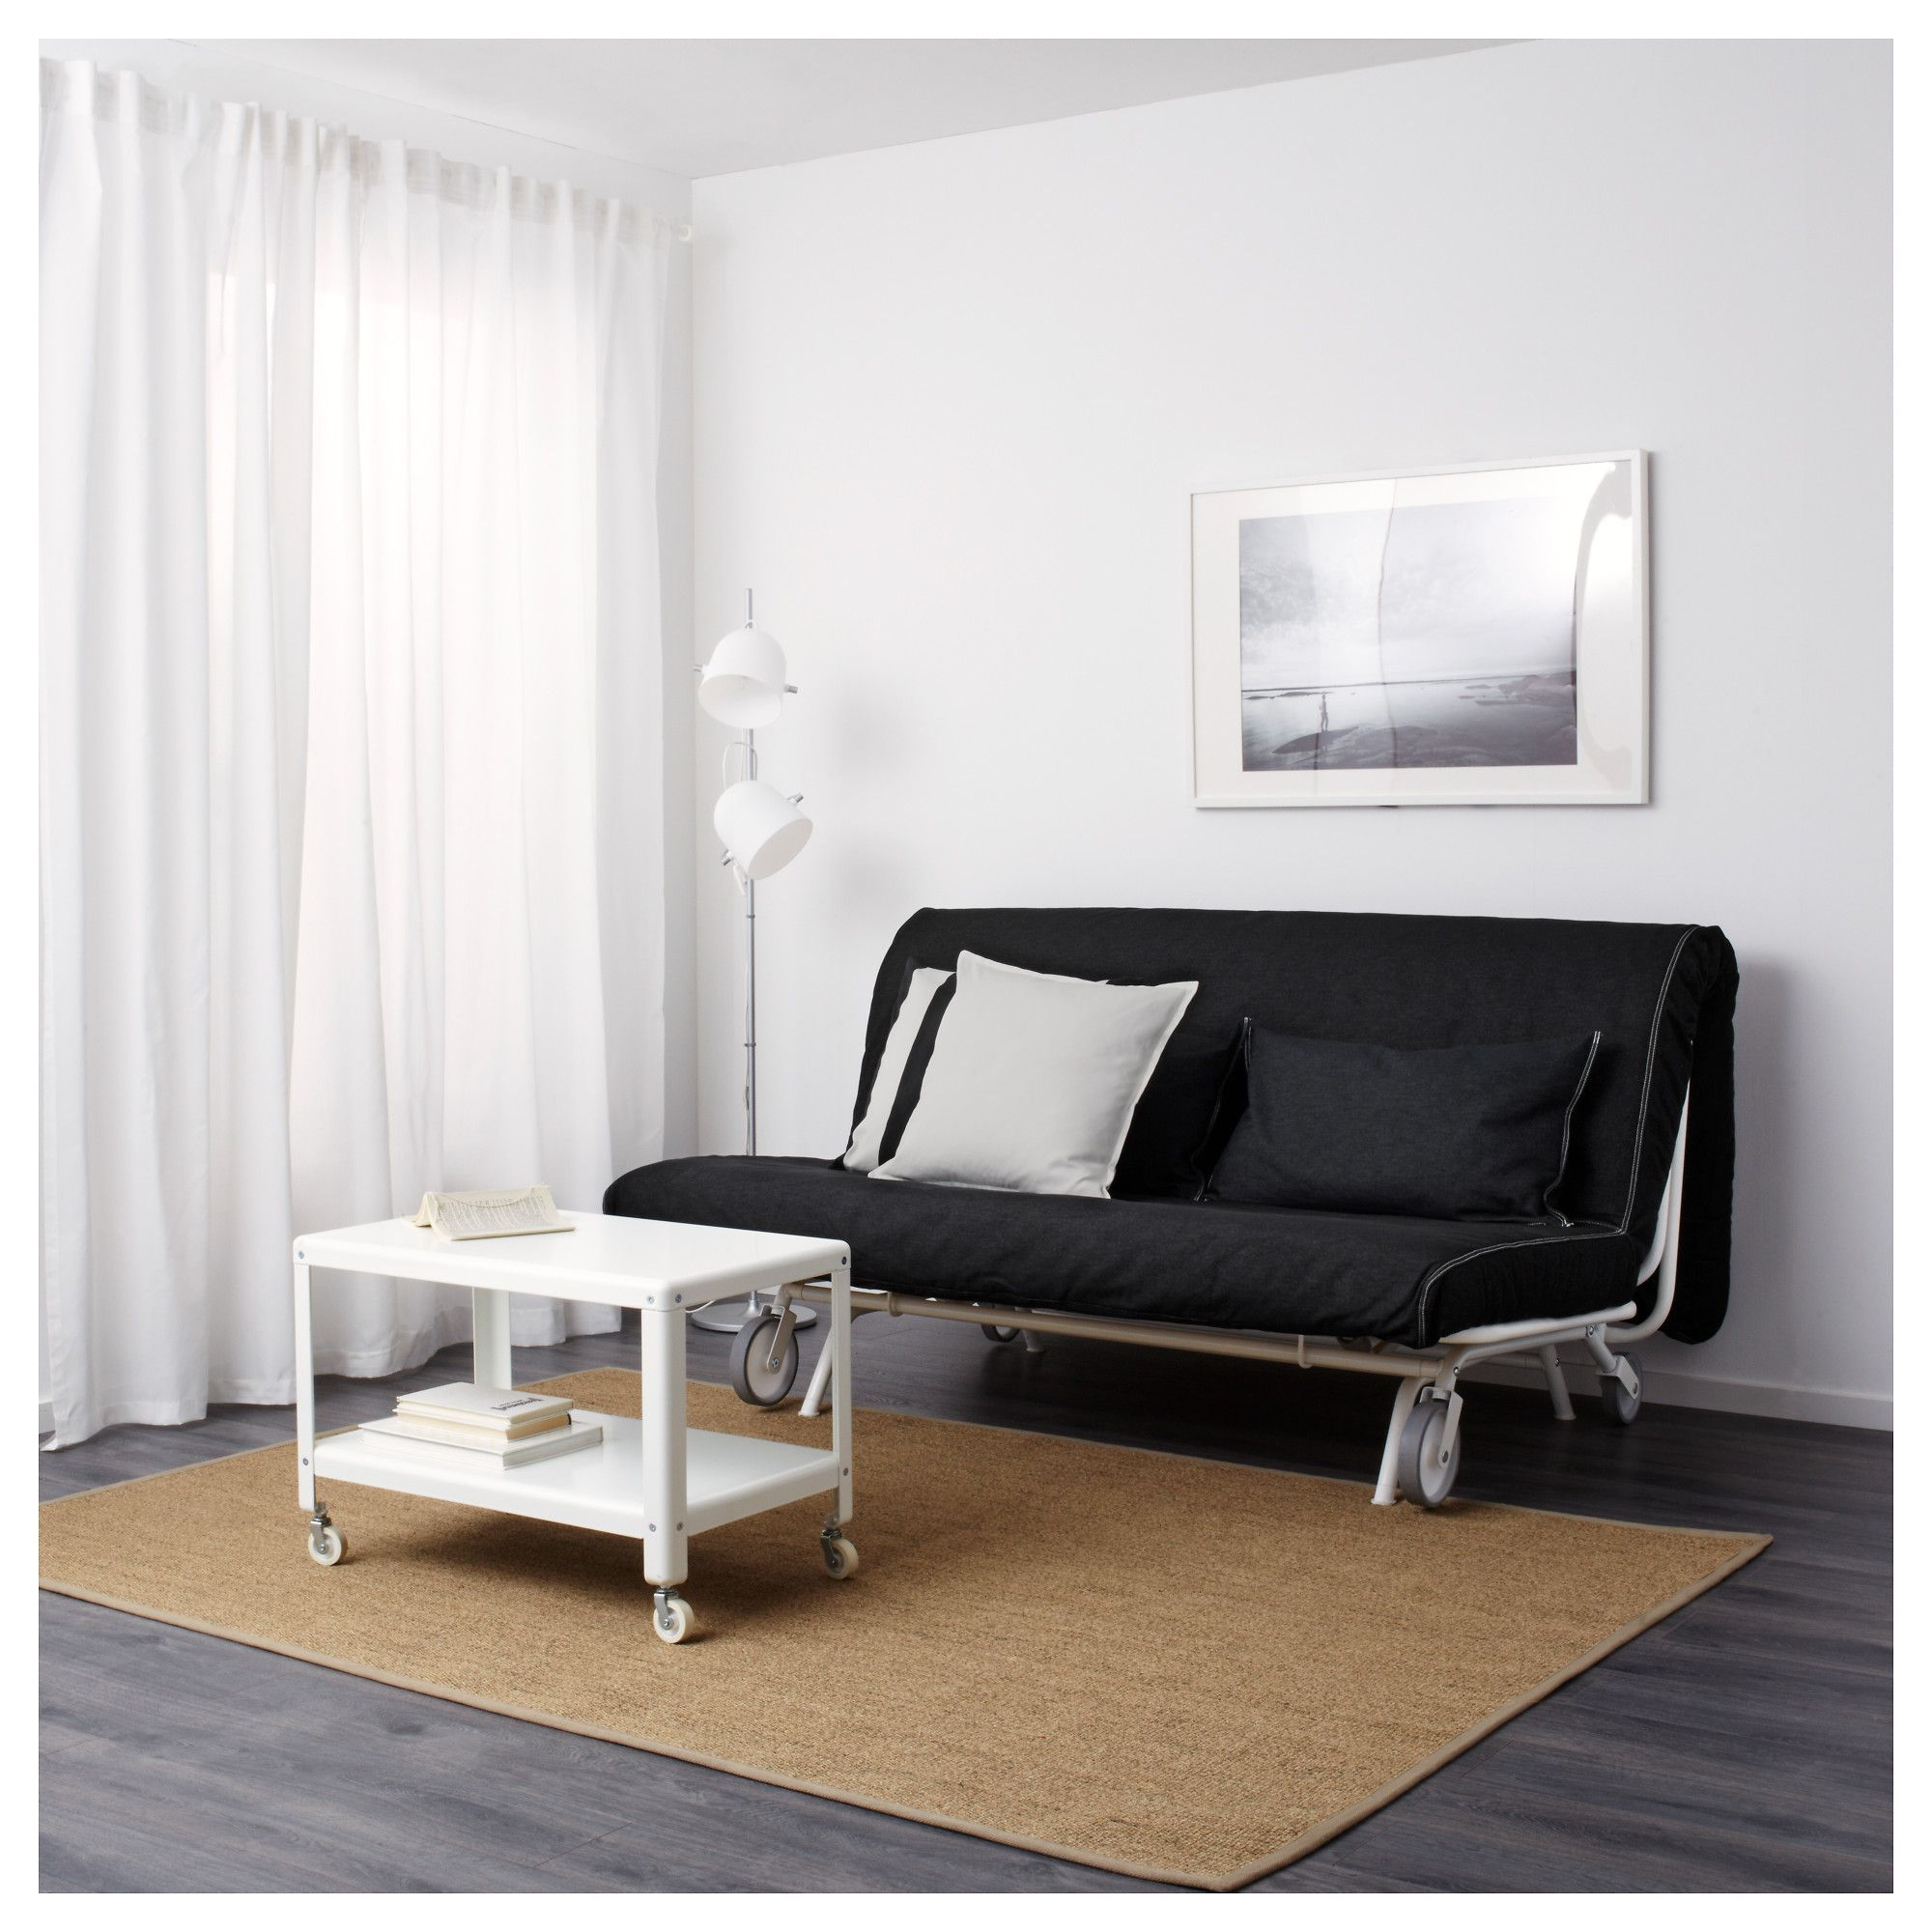 classy ideas chair ikea cozy sleeper sofas beds design